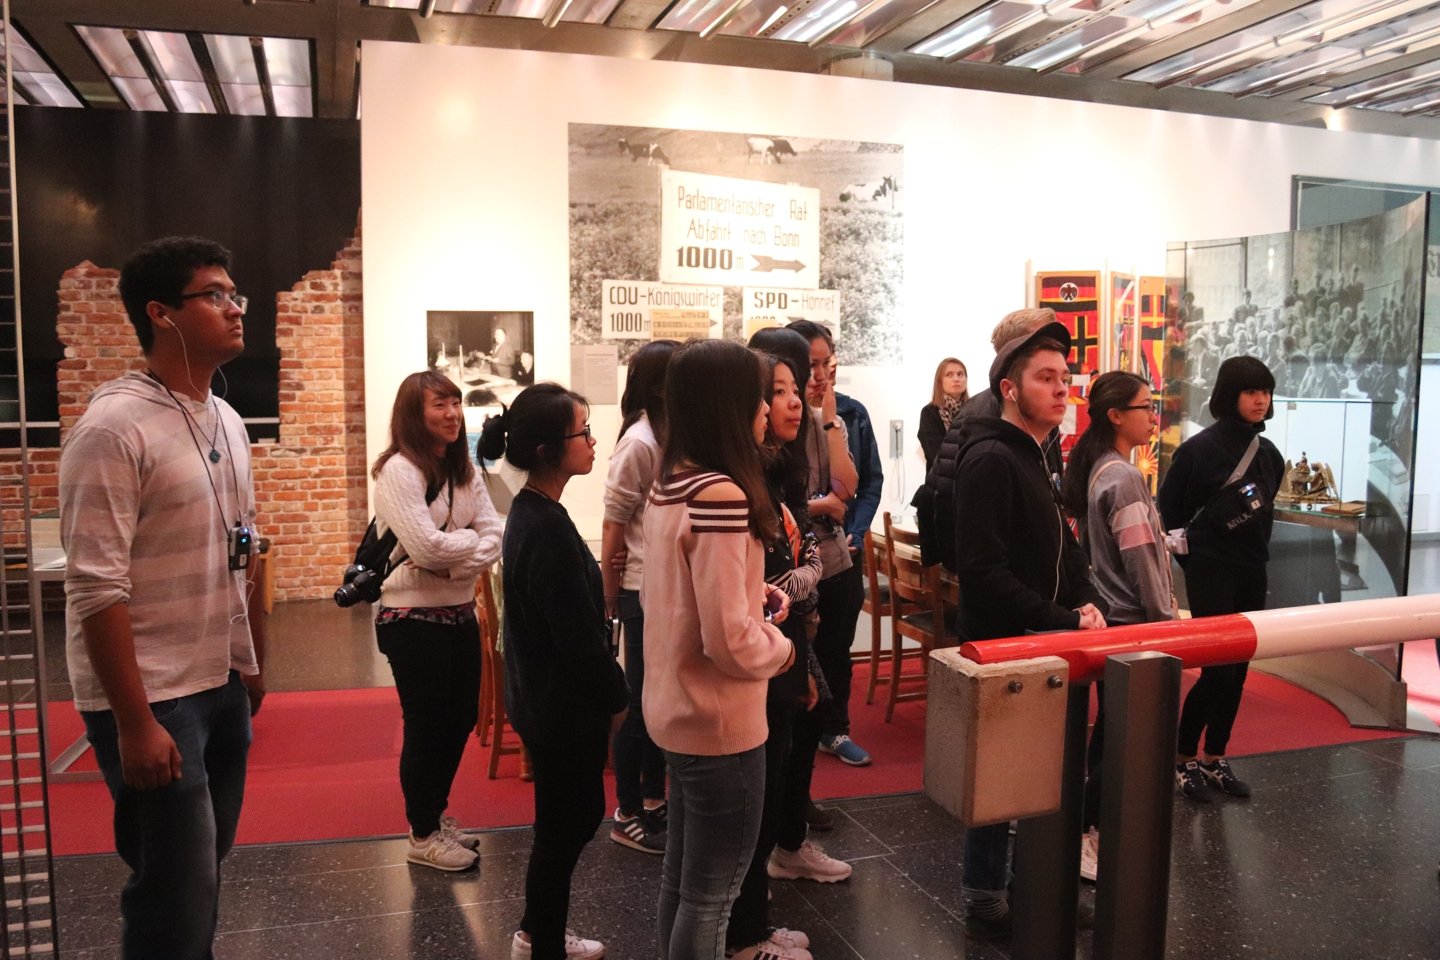 Students looking around in the museum (Haus der Geschichte)